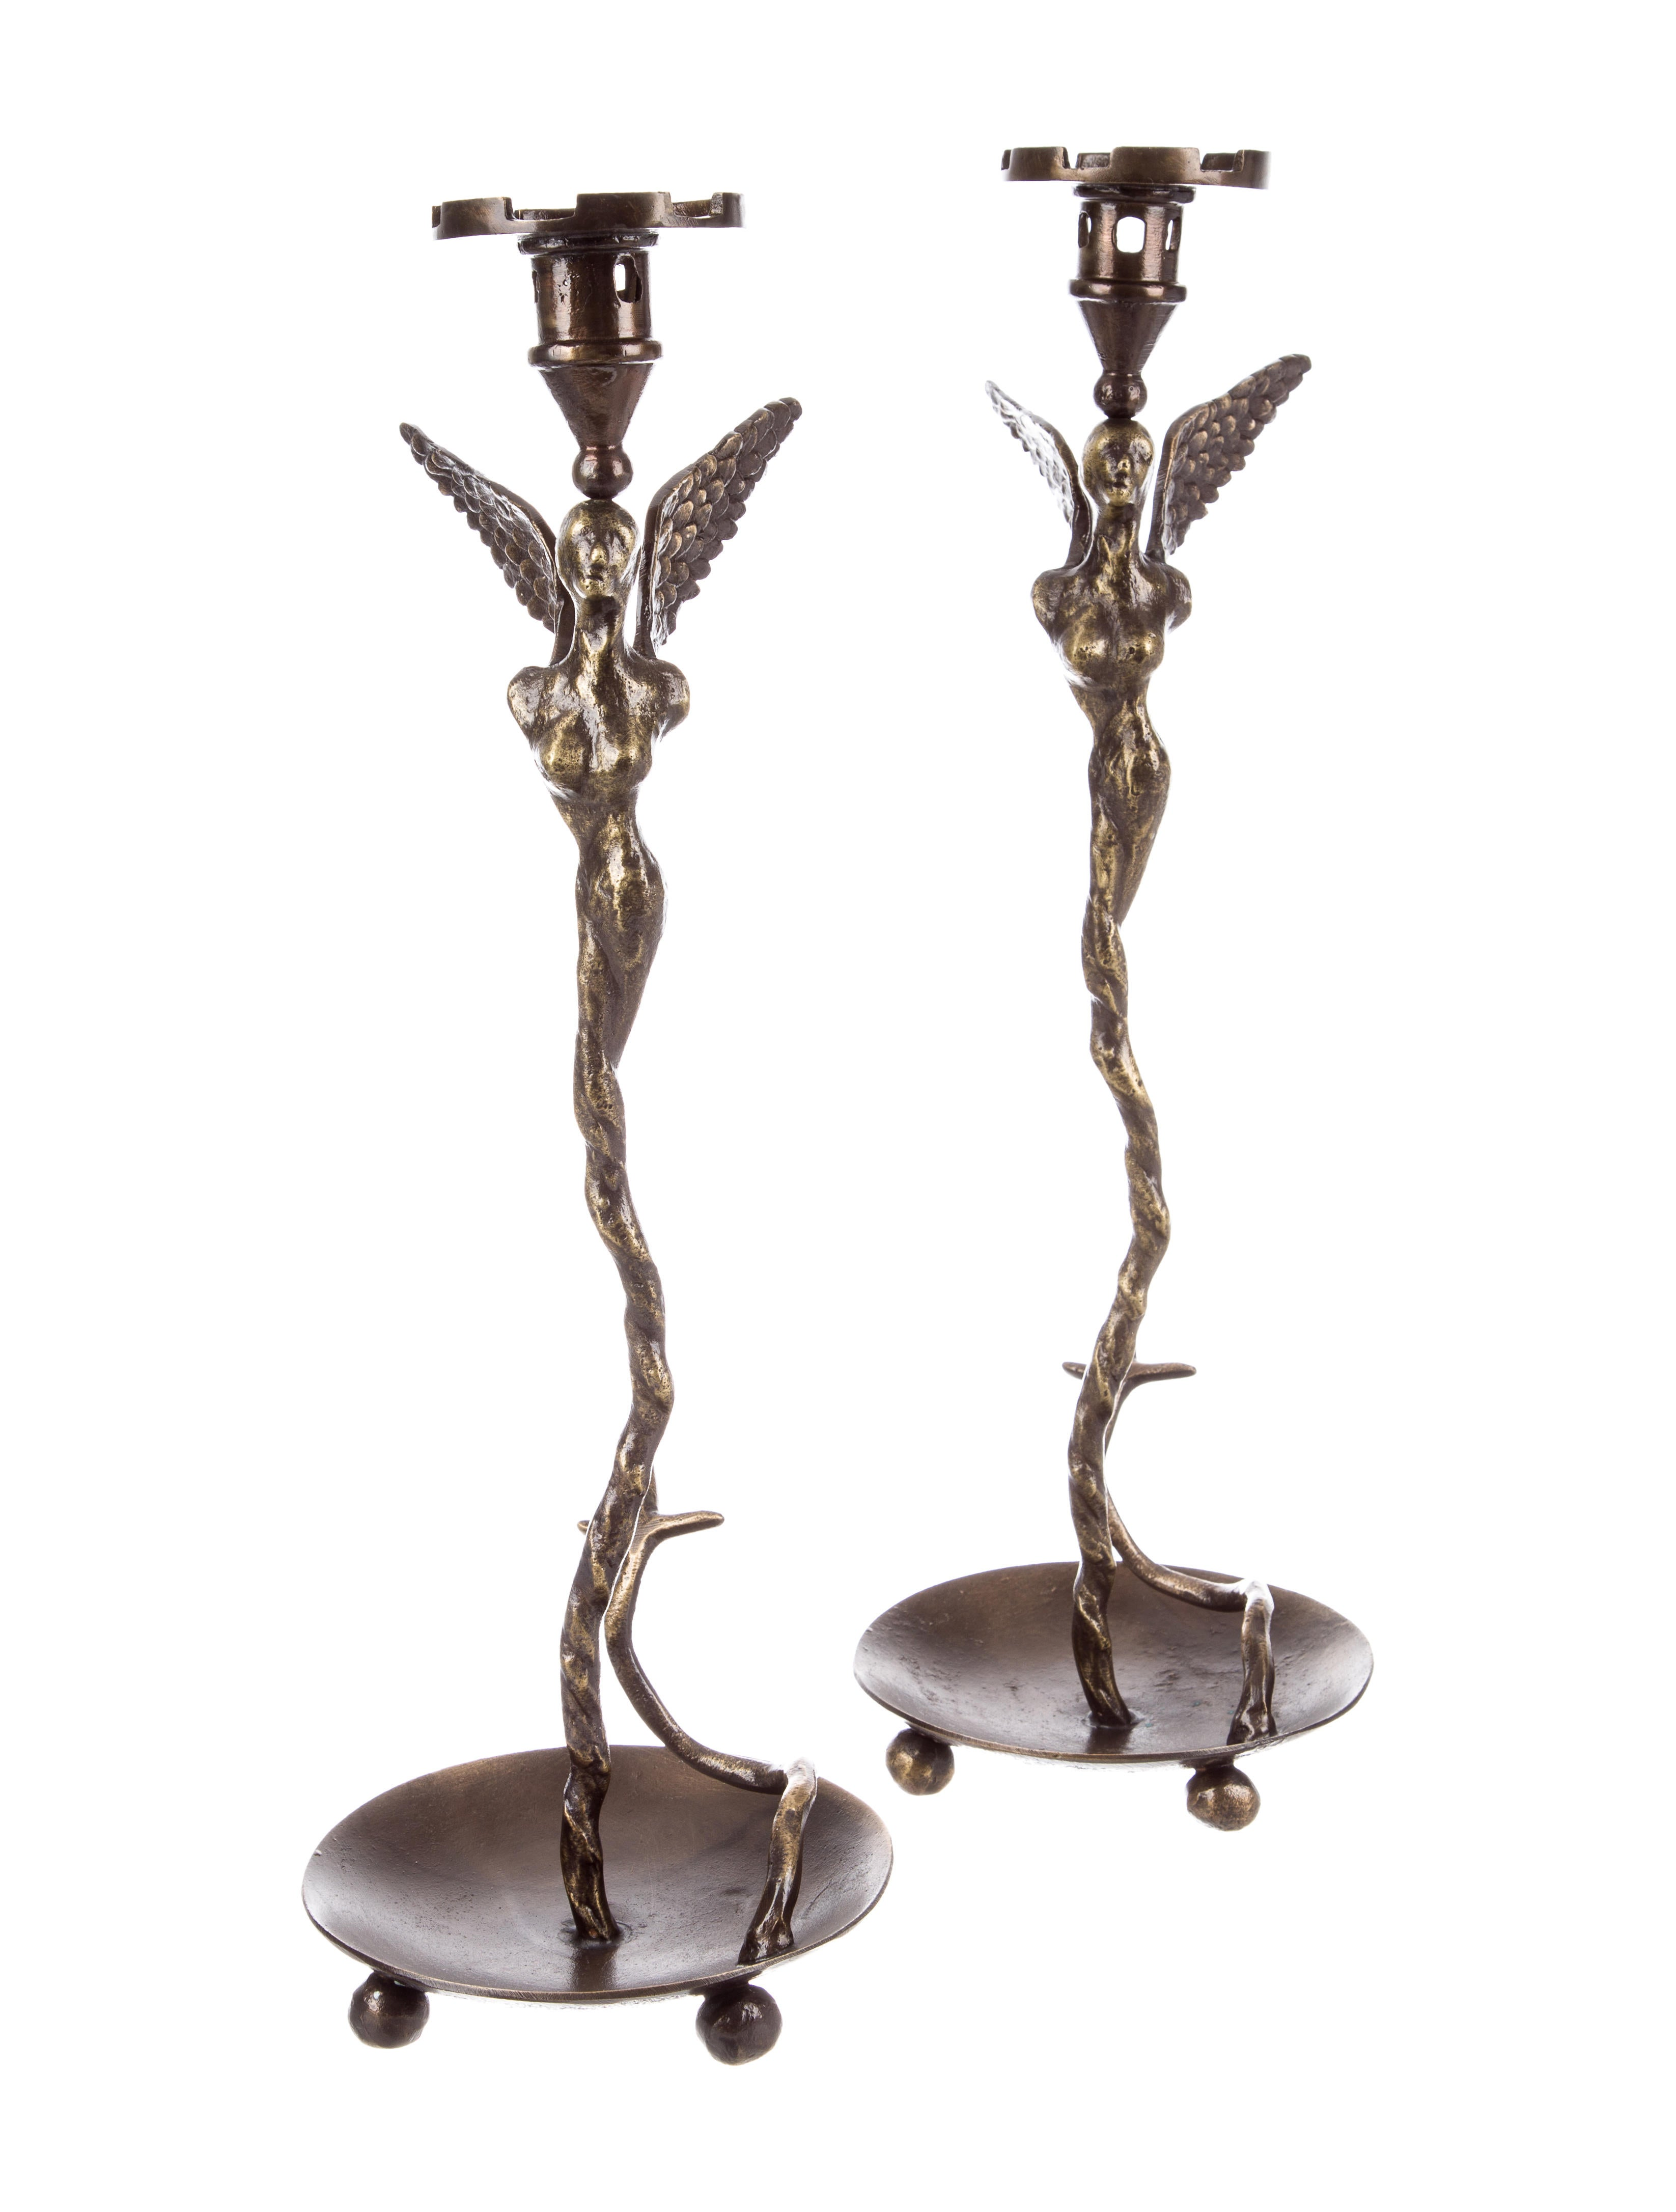 Michael aram melusine candlesticks decor and accessories mca20561 the realreal Home decor candlesticks